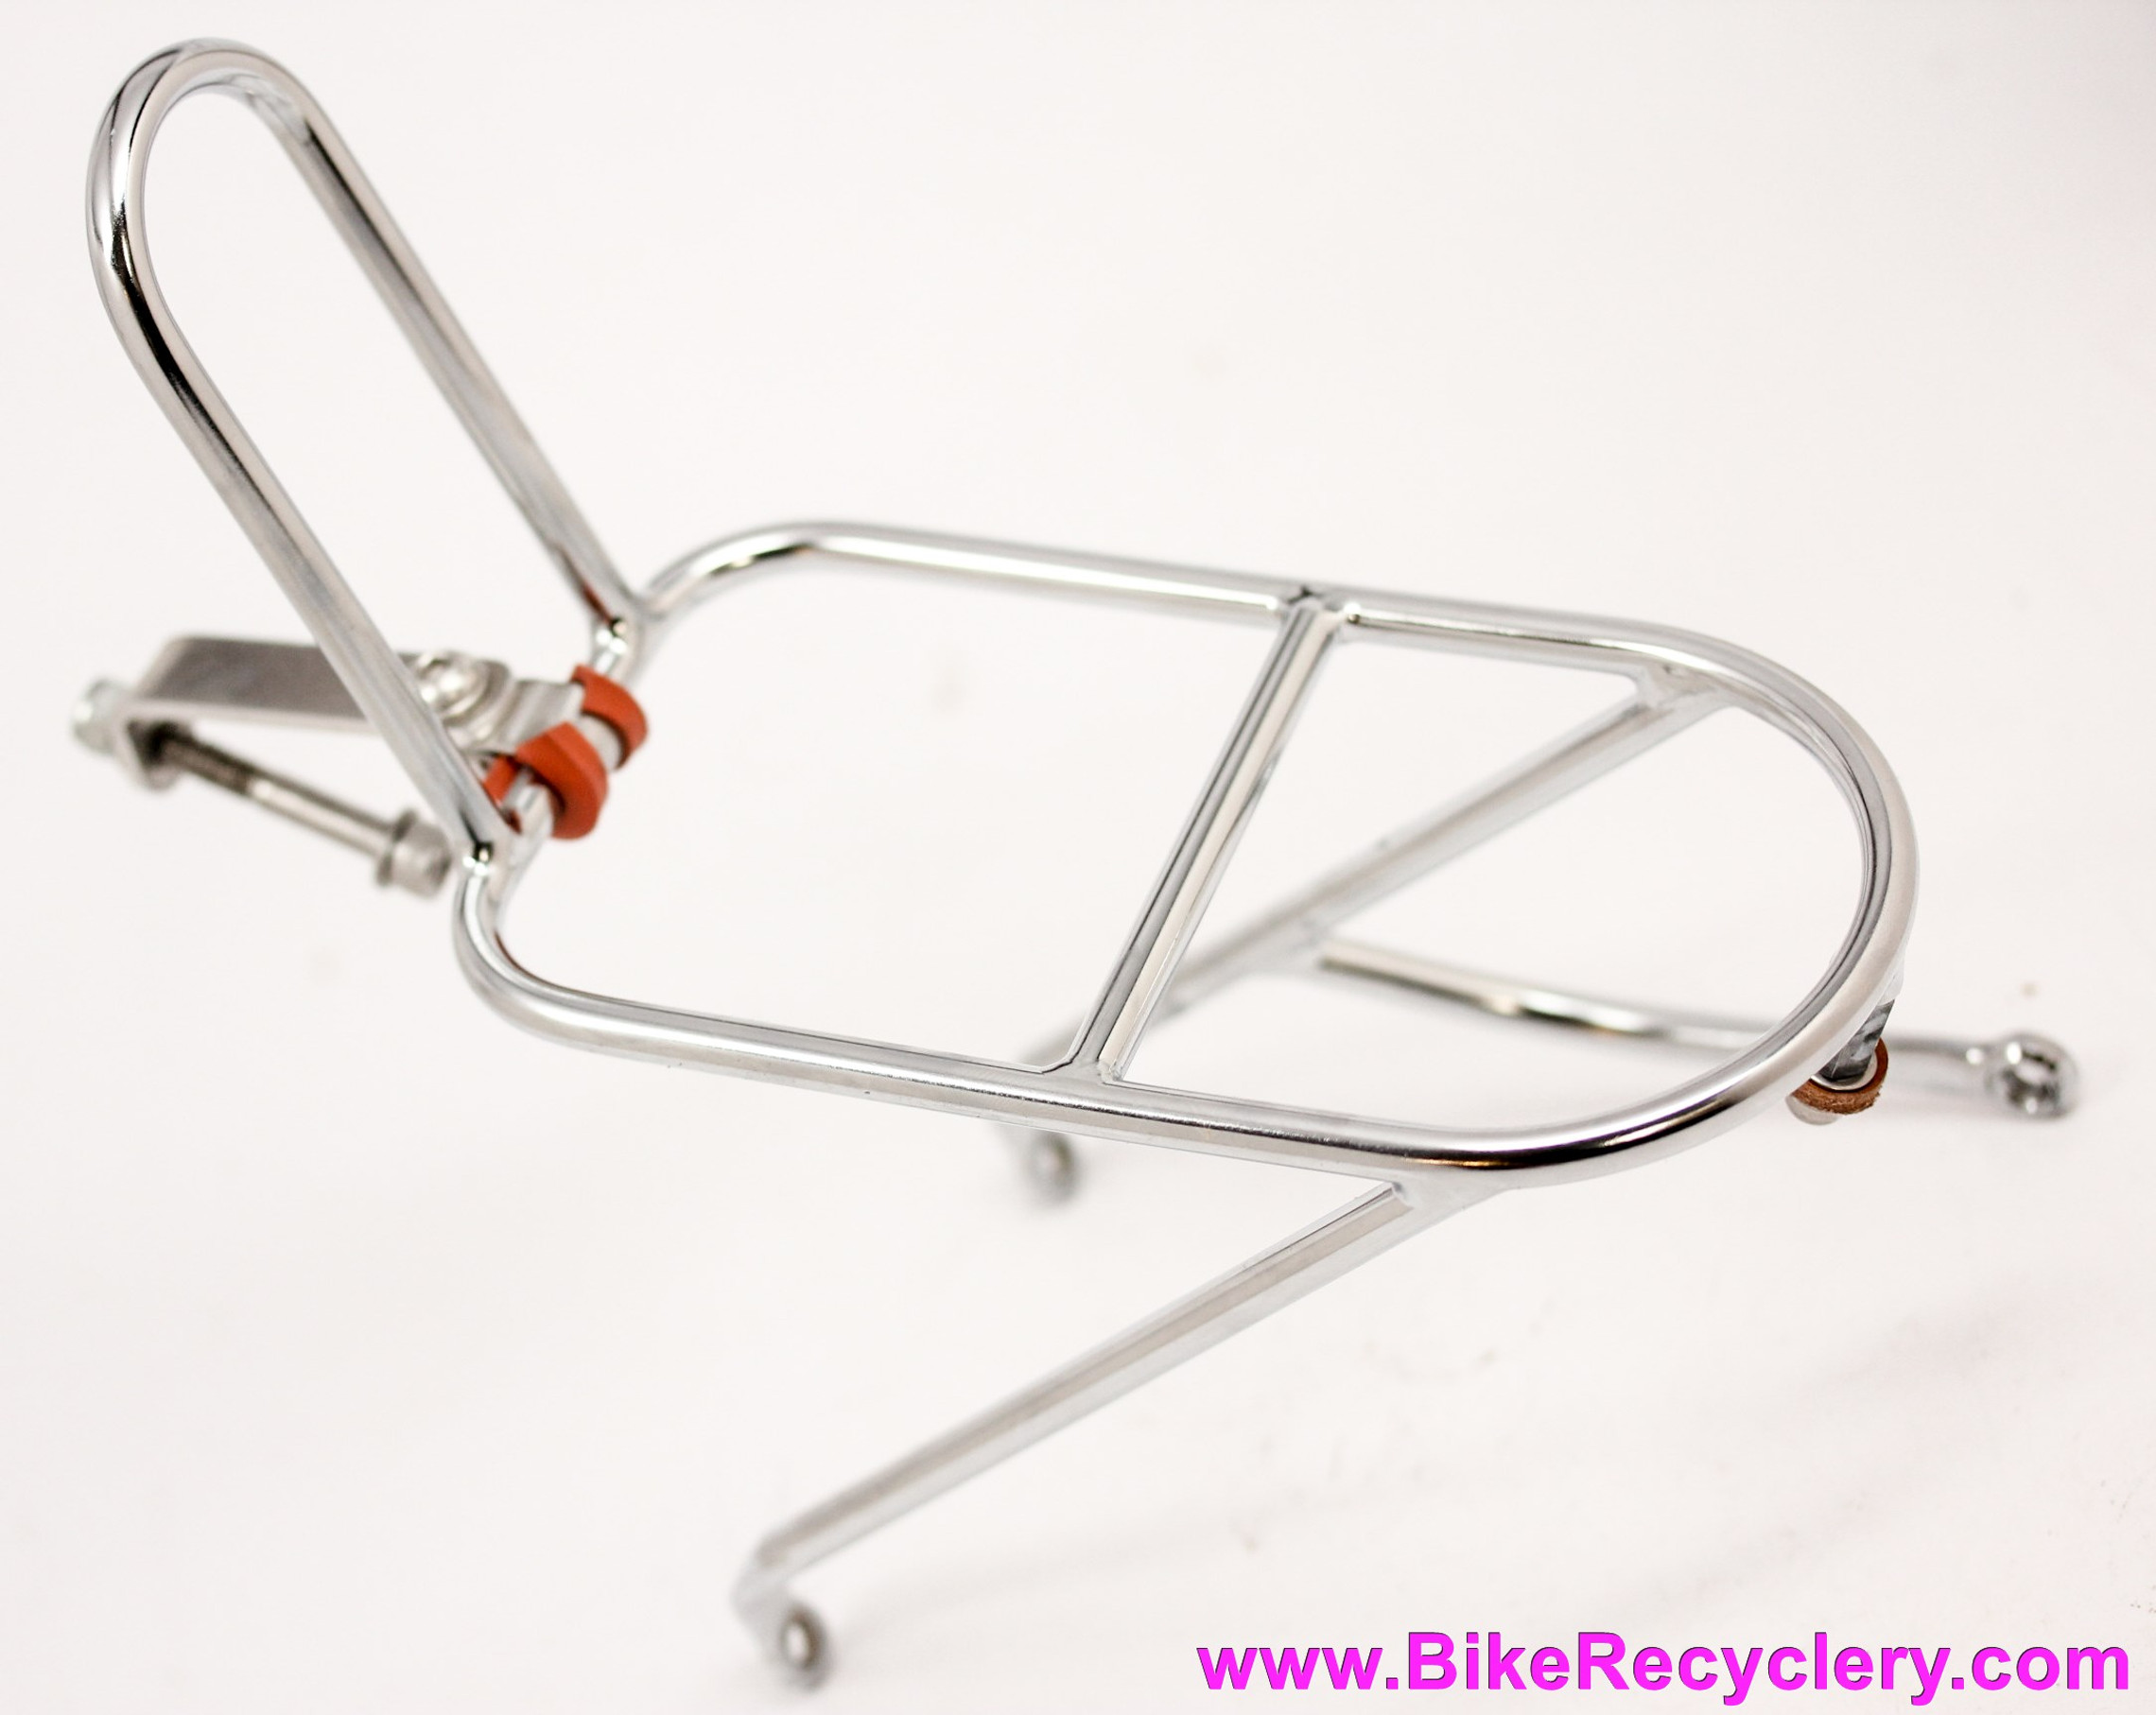 Rene Herse Nitto M13 Wide Canti Front Rack: Custom Adjustable Crown Attachment (MINT <20mi)